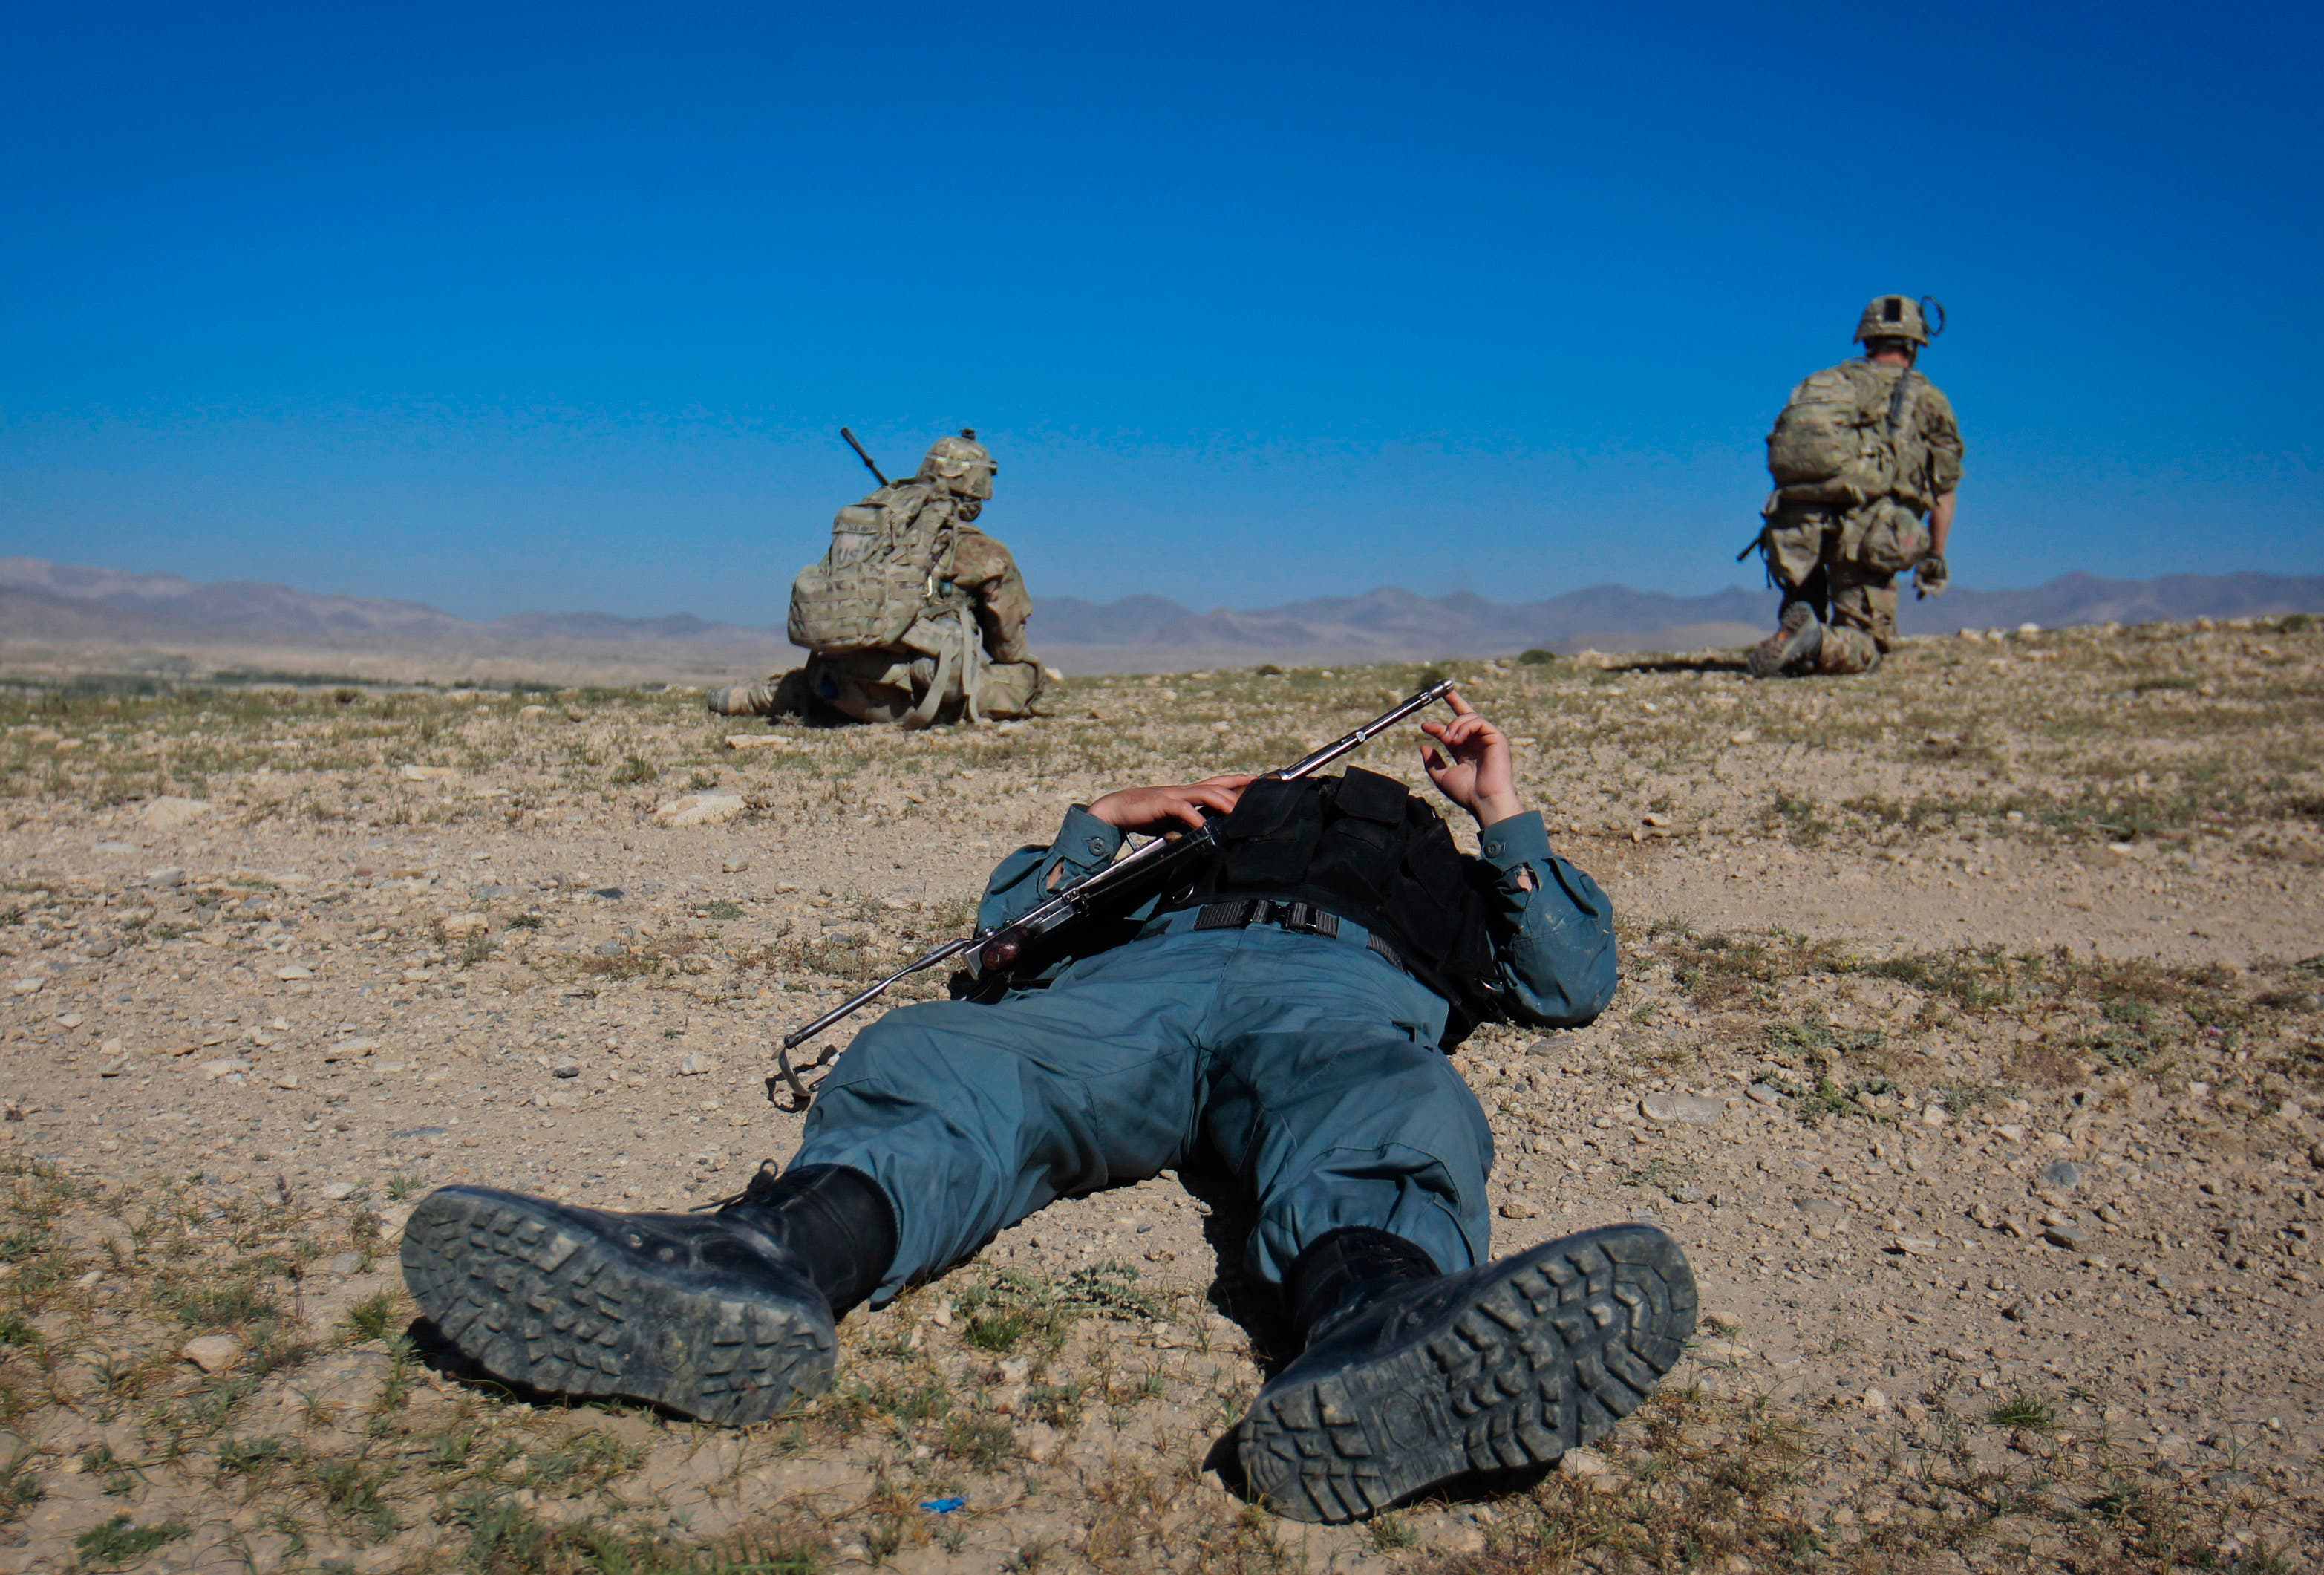 Afghan Forces Take Over Security From NATO